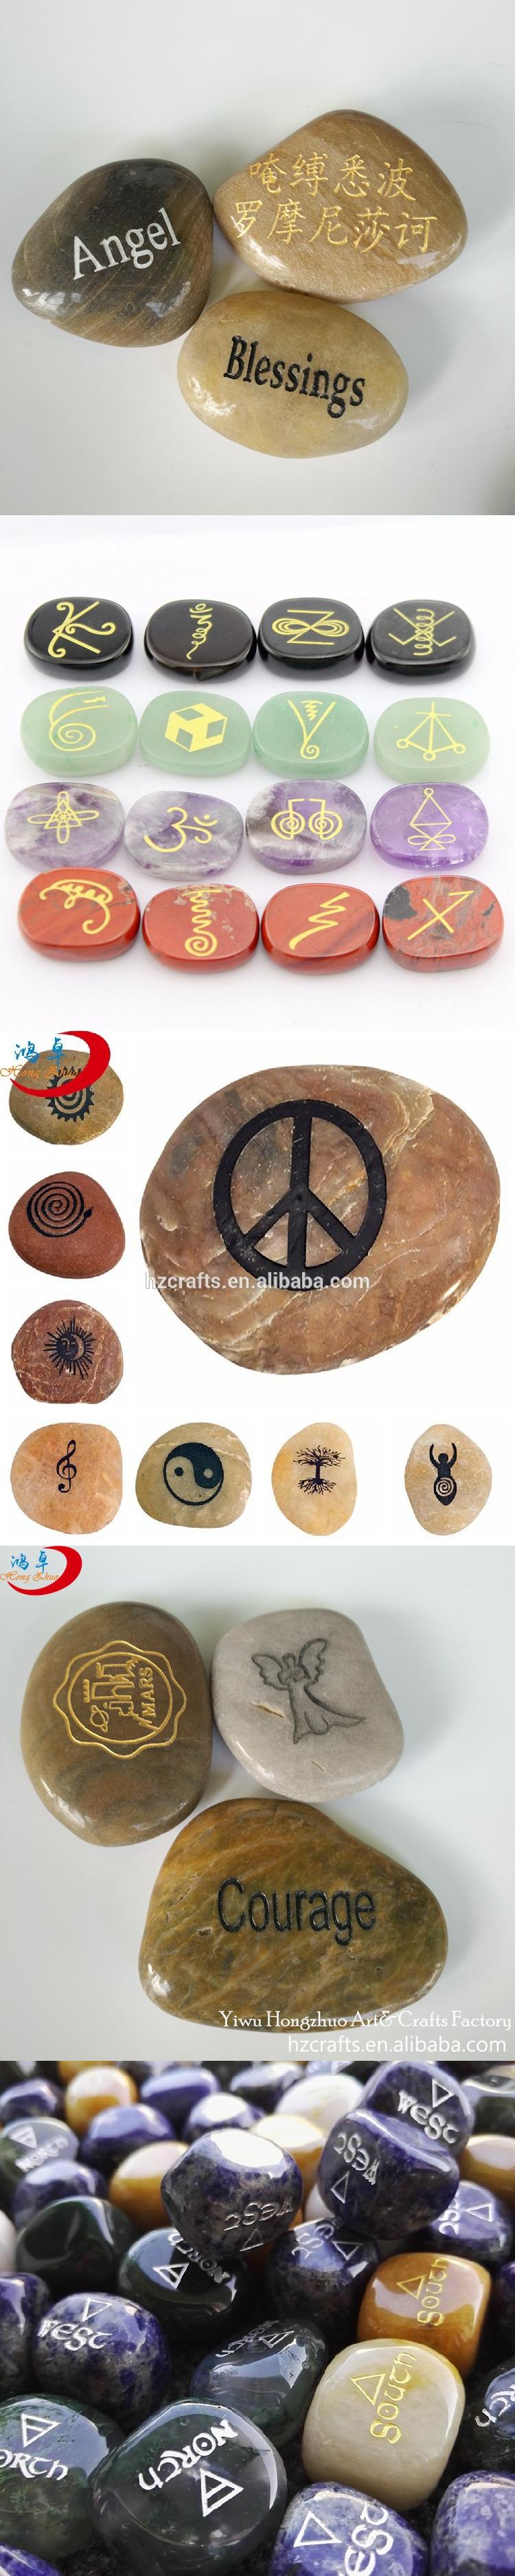 Custom engraved word pebbles stone ,inspirational engraved stone